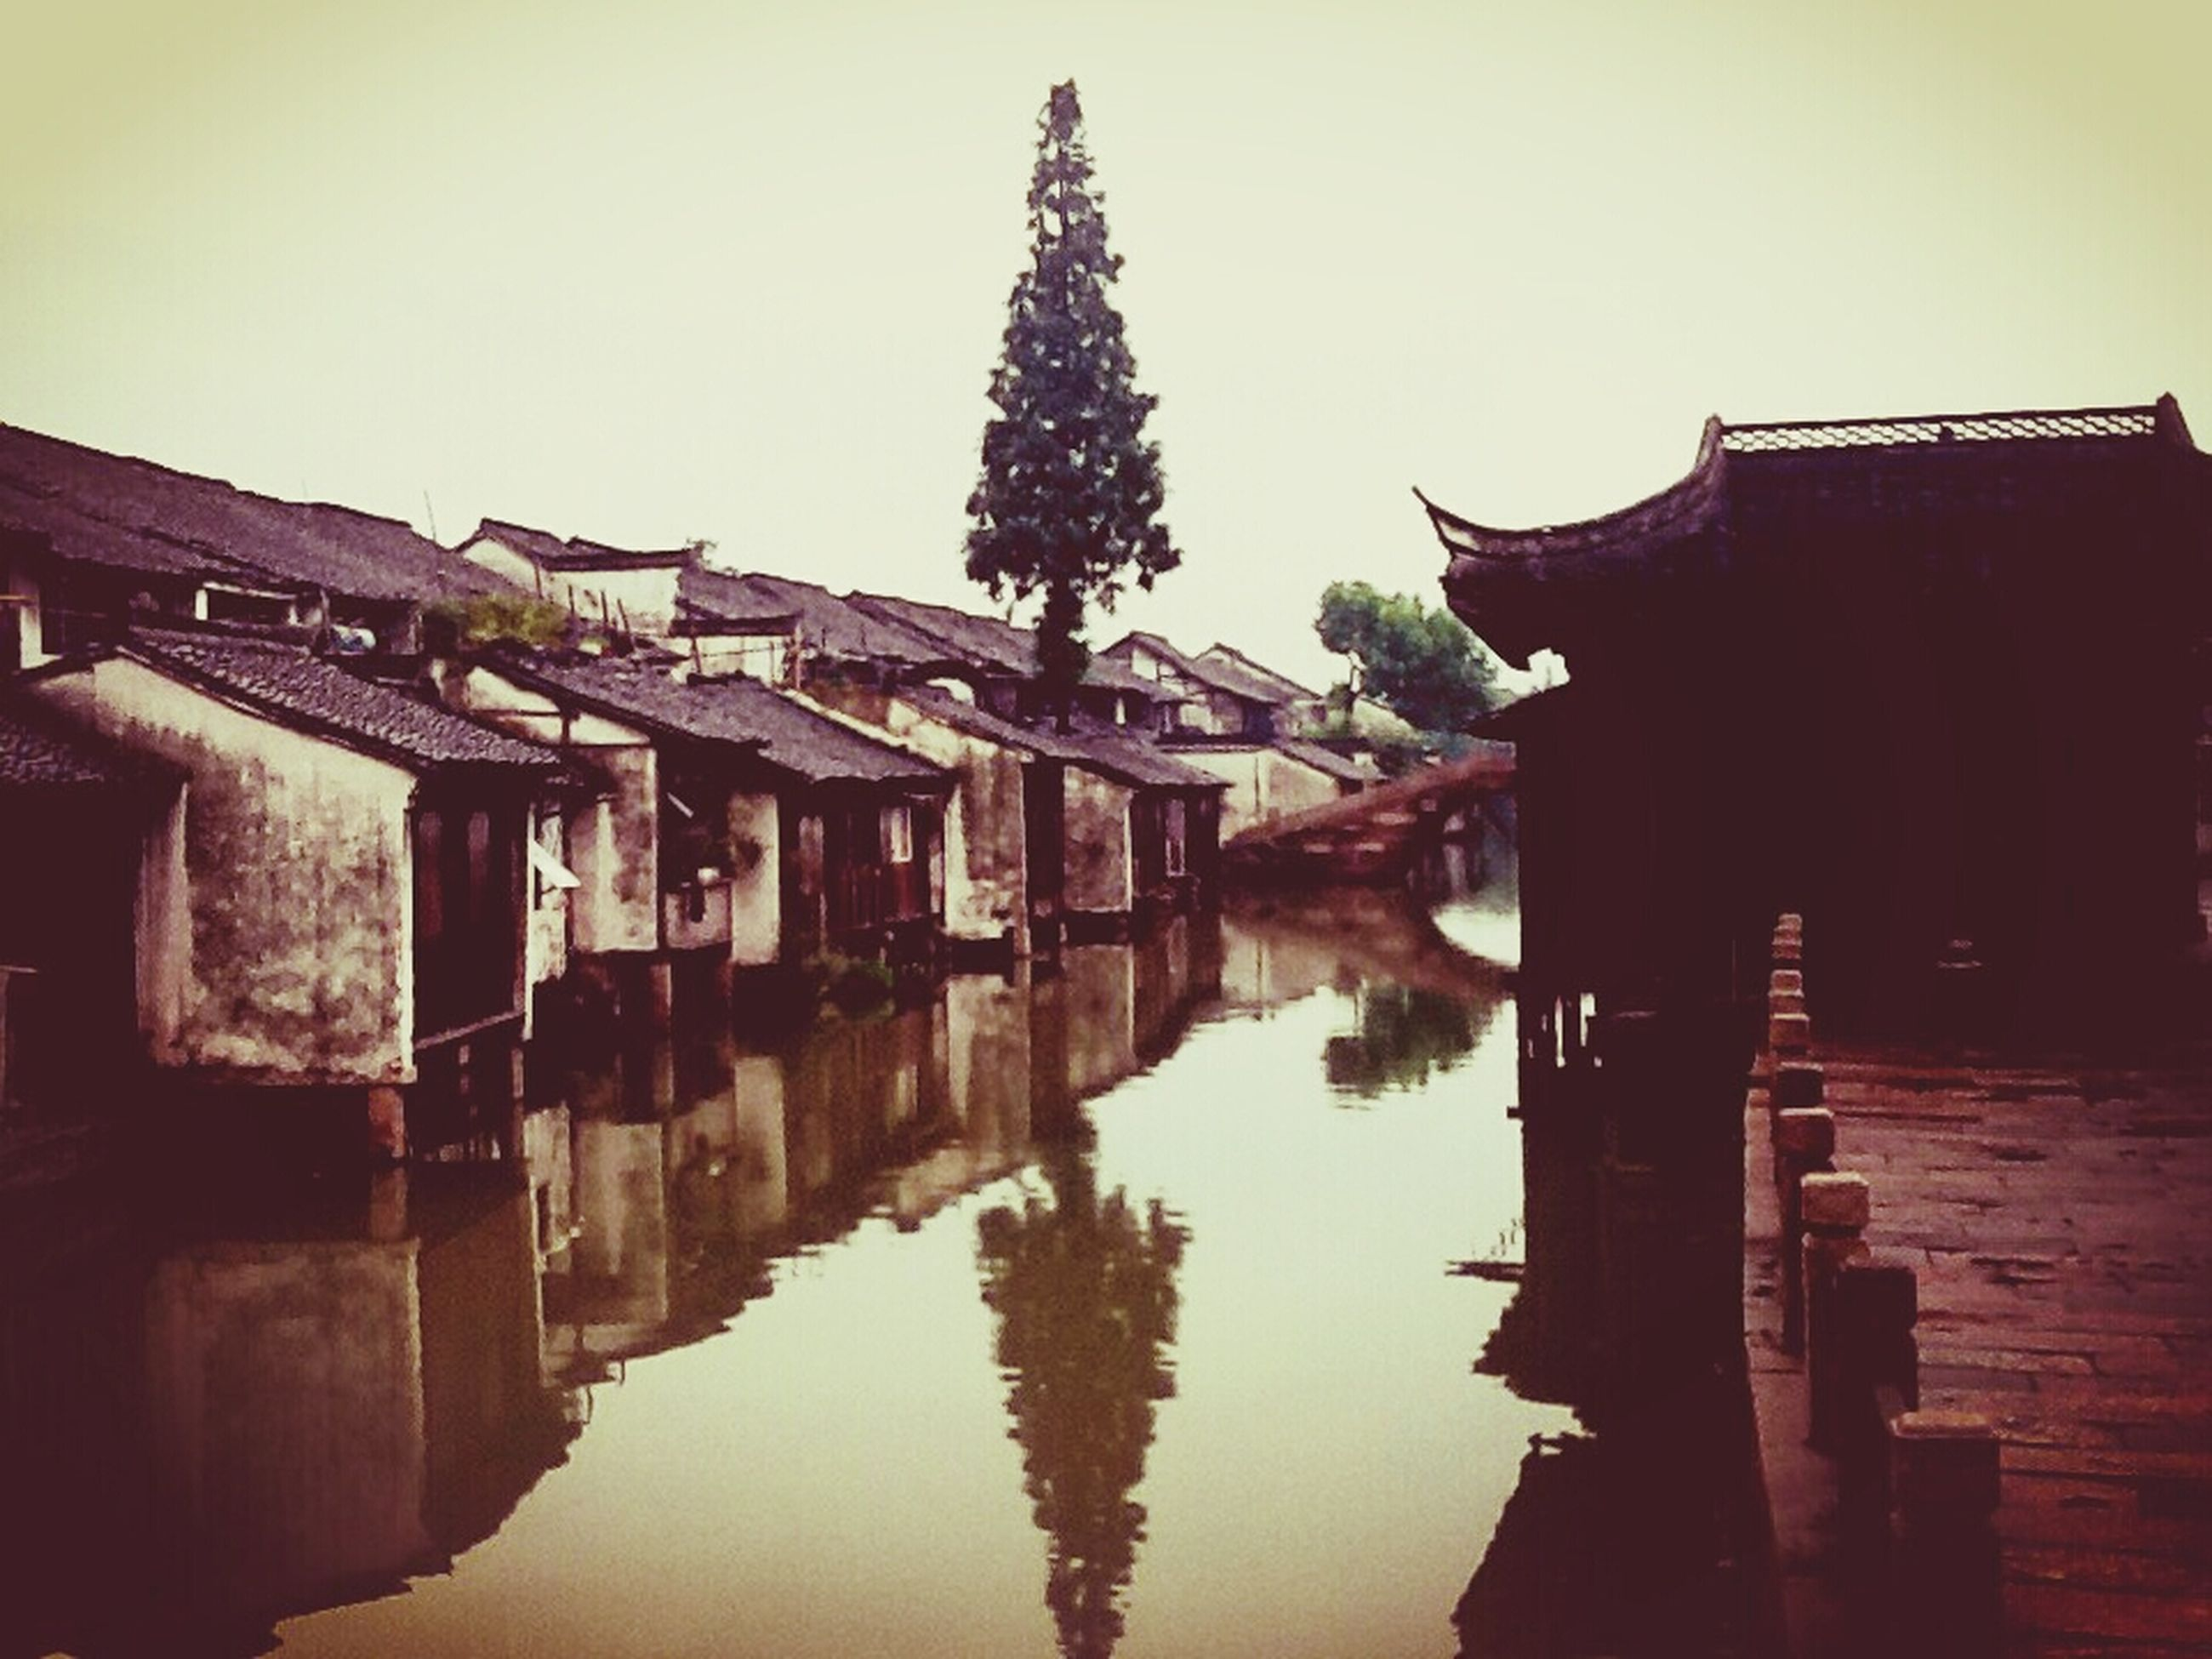 architecture, built structure, building exterior, water, reflection, waterfront, clear sky, house, canal, residential structure, residential building, river, building, sky, outdoors, old, lake, no people, day, standing water